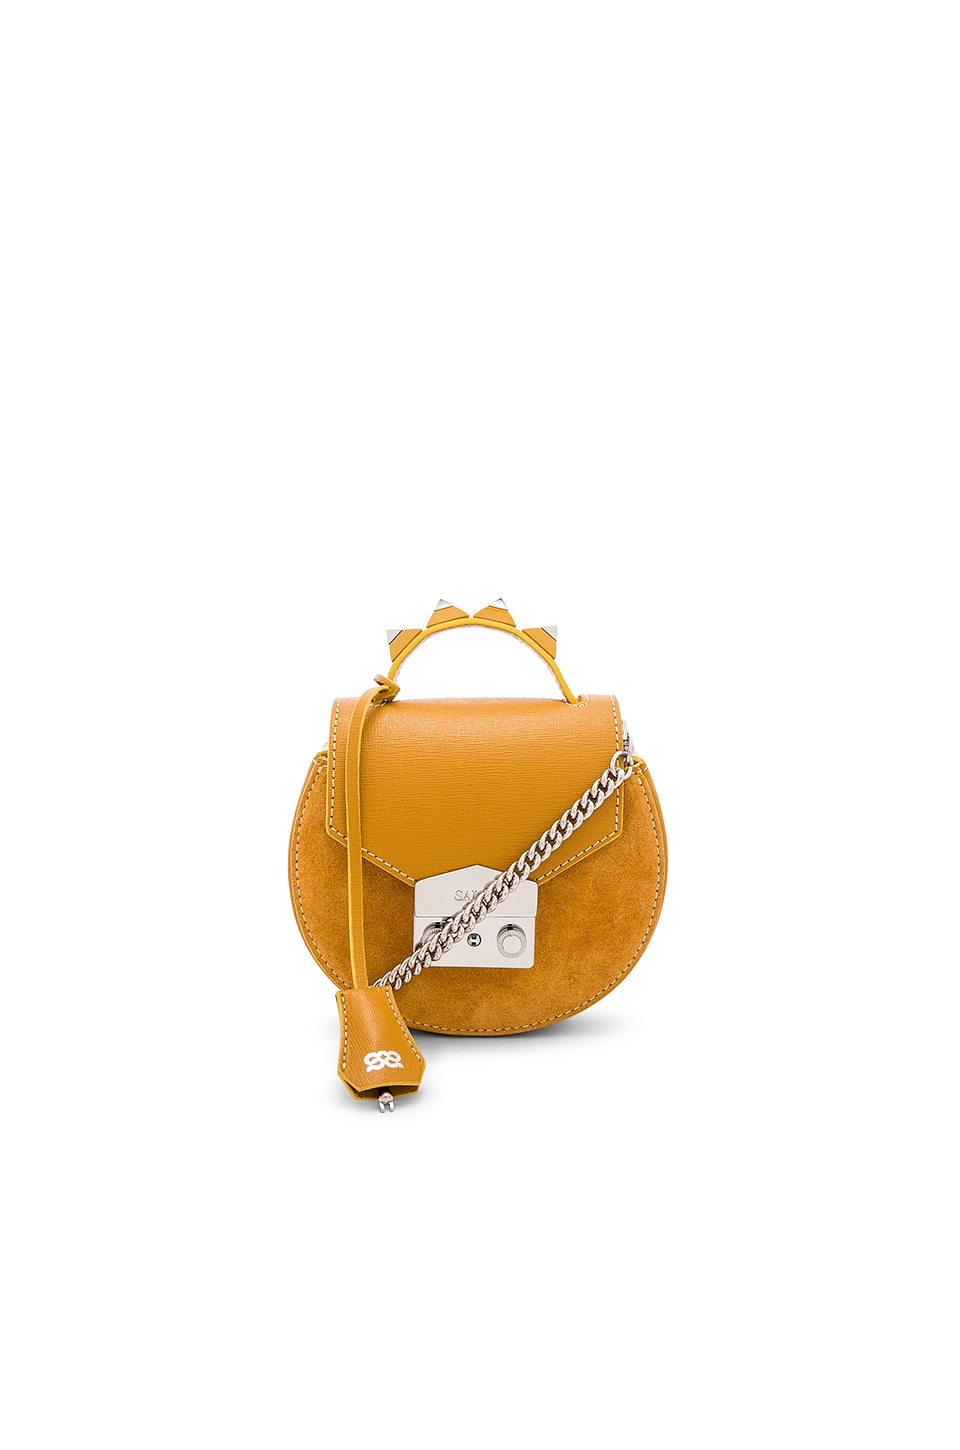 SALAR Carol Bag in Ochre